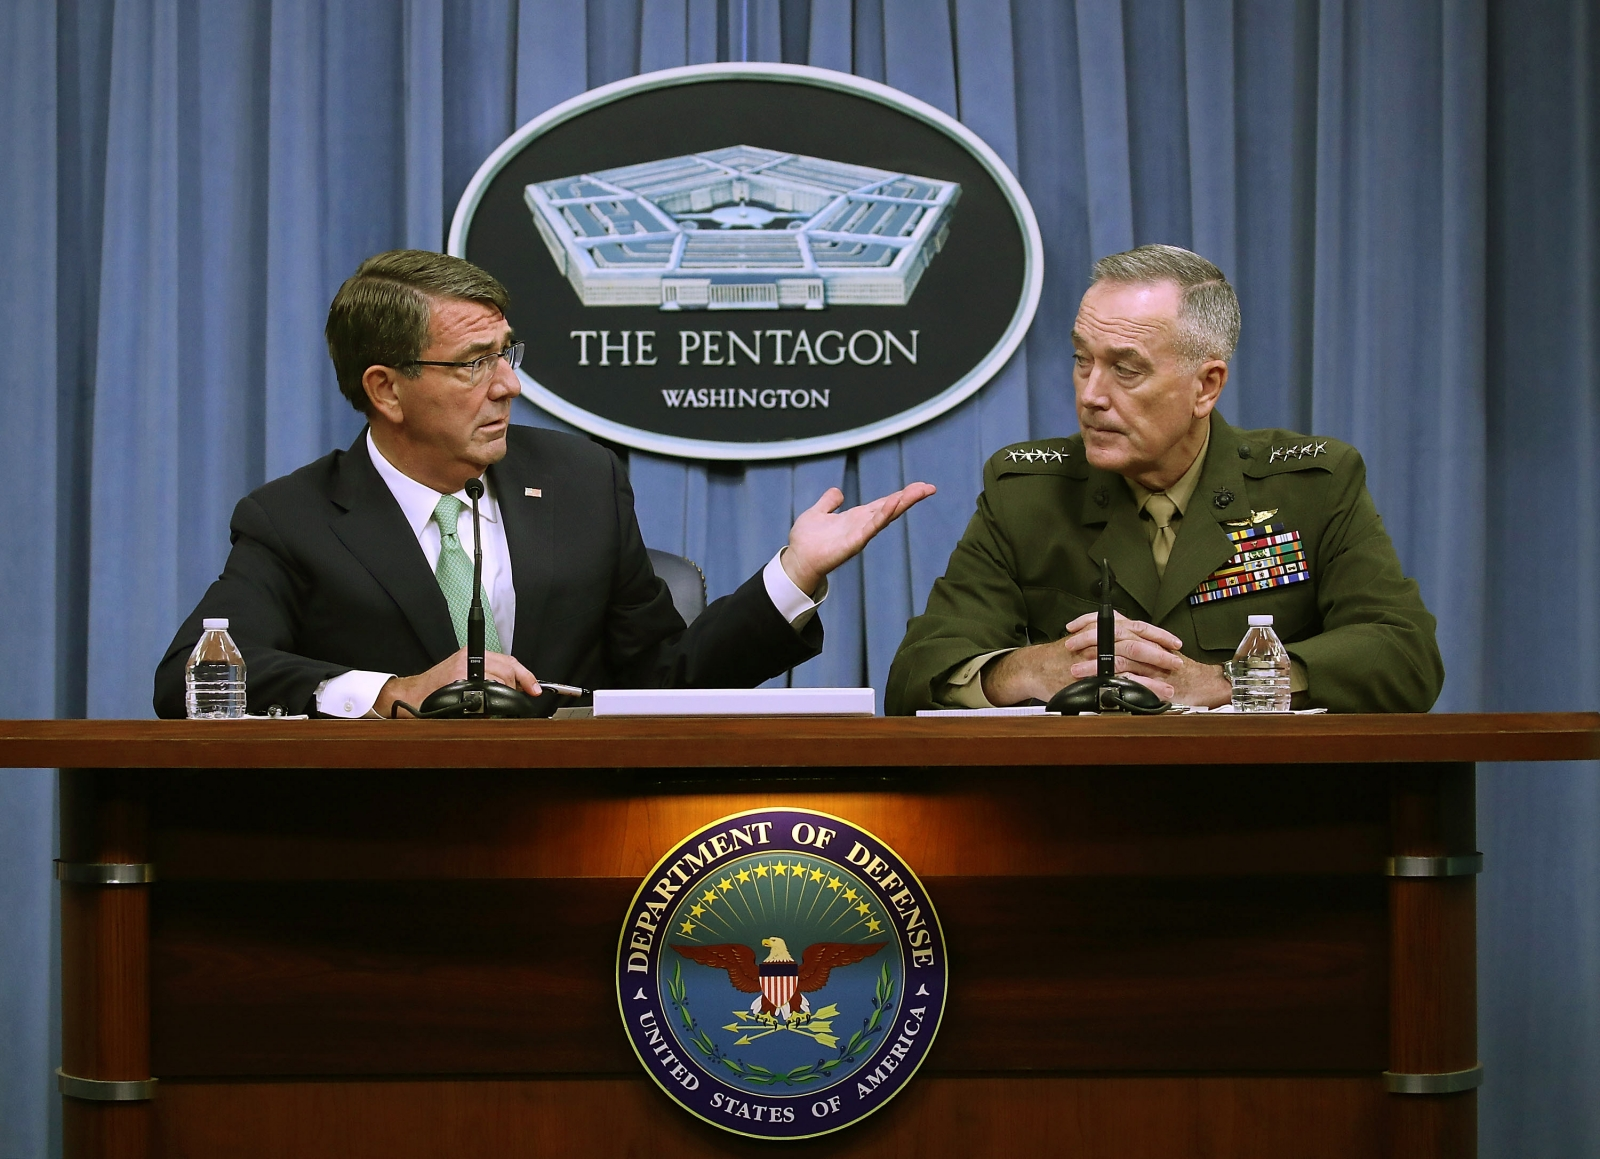 Pentagon on Russia deal in Syria